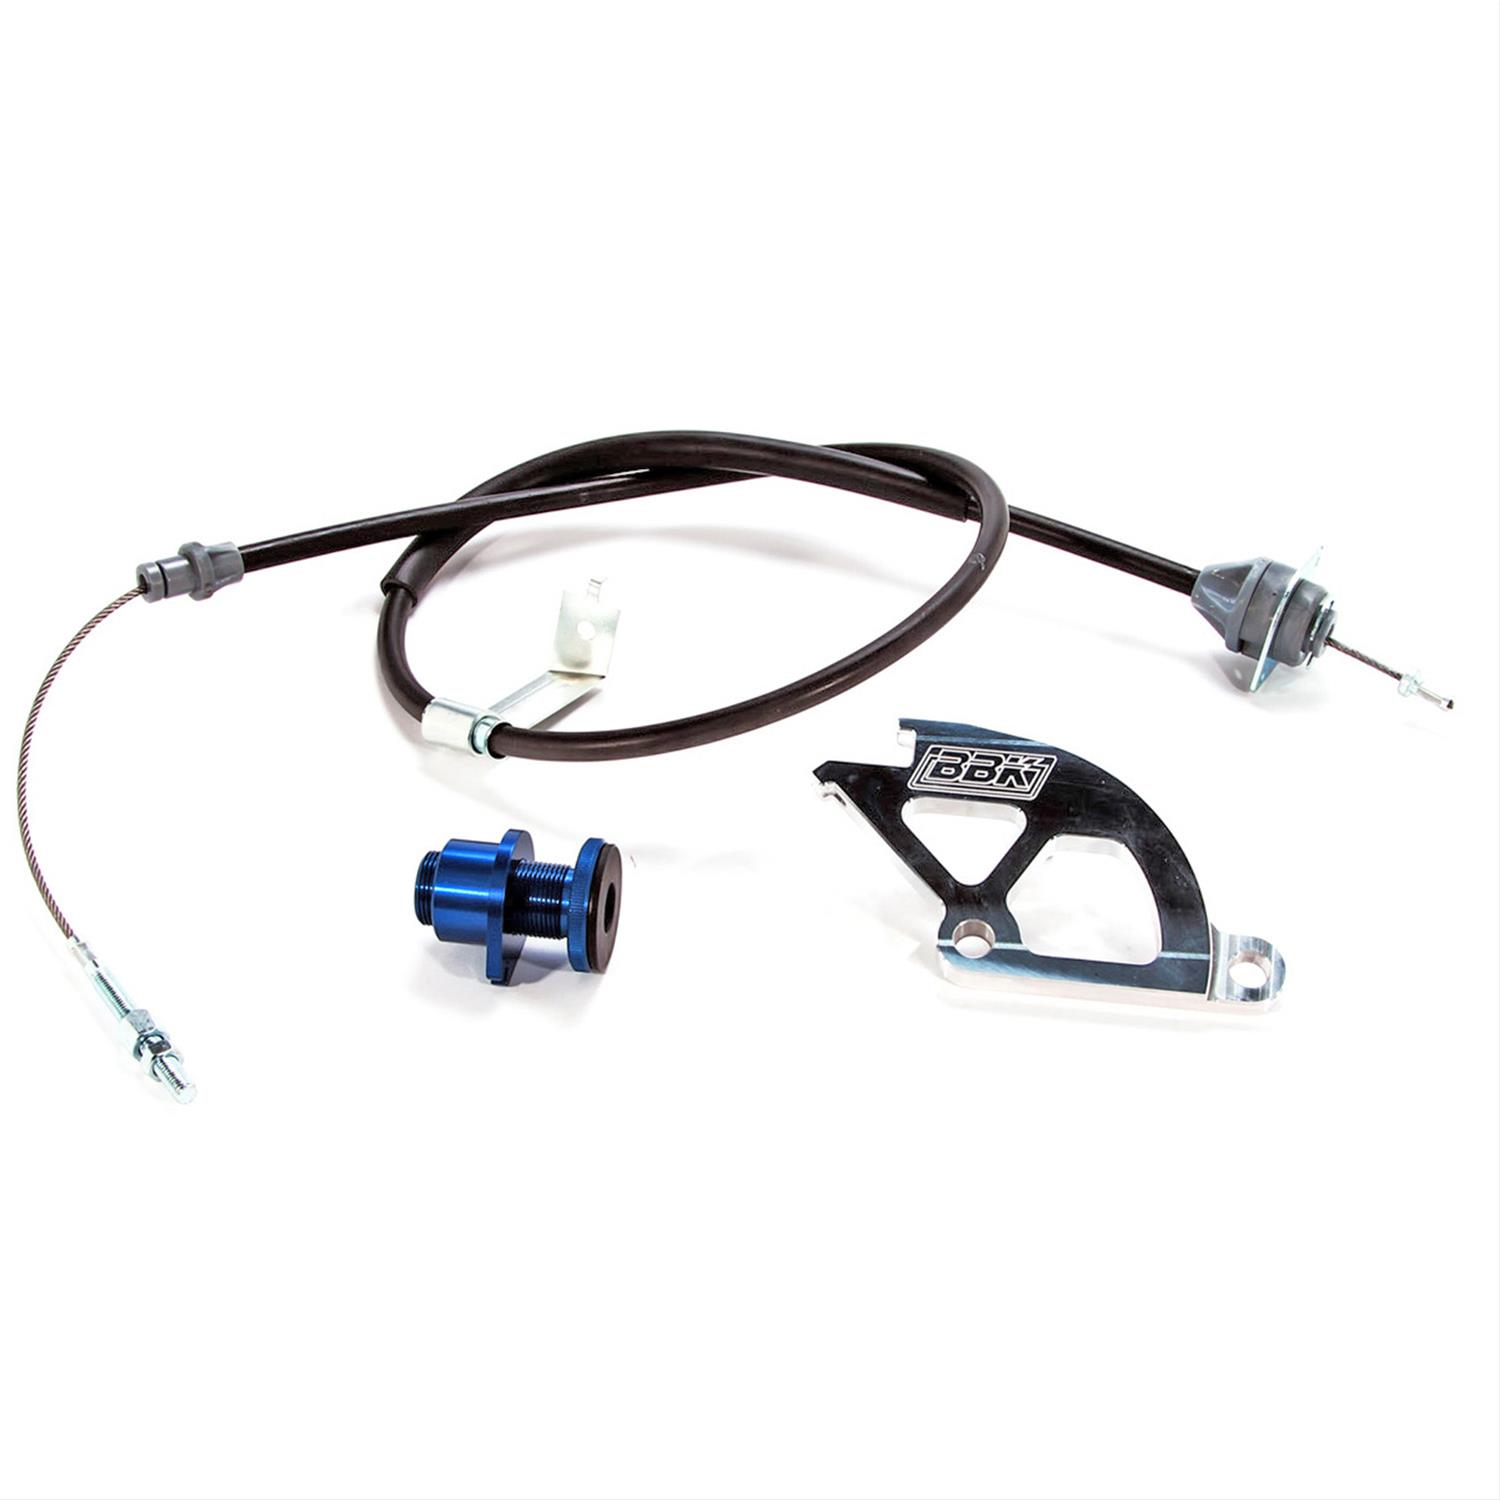 Bbk Clutch Cable W Aluminum Quadrant Firewall Adjustable